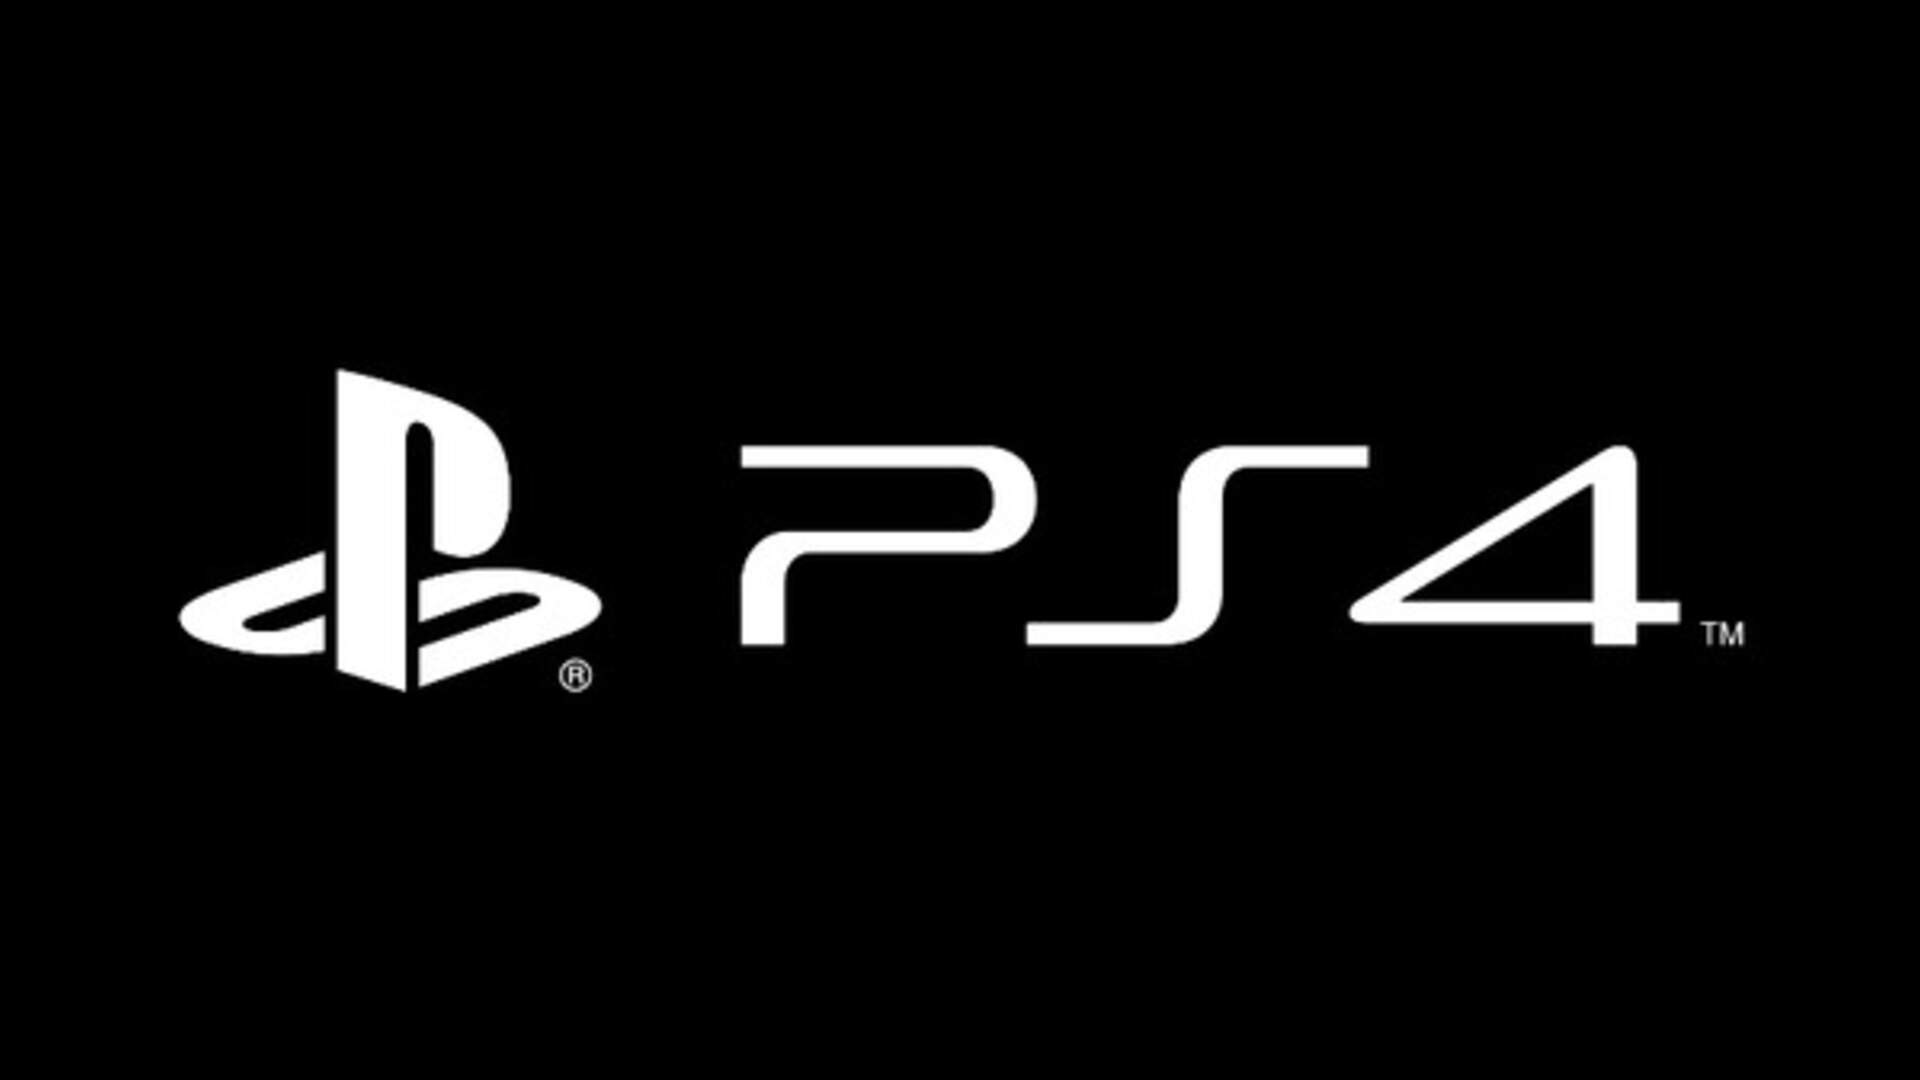 PlayStation 4 Firmware Update 5.0 Will Add 1080p Twitch Streaming, Other Improvements